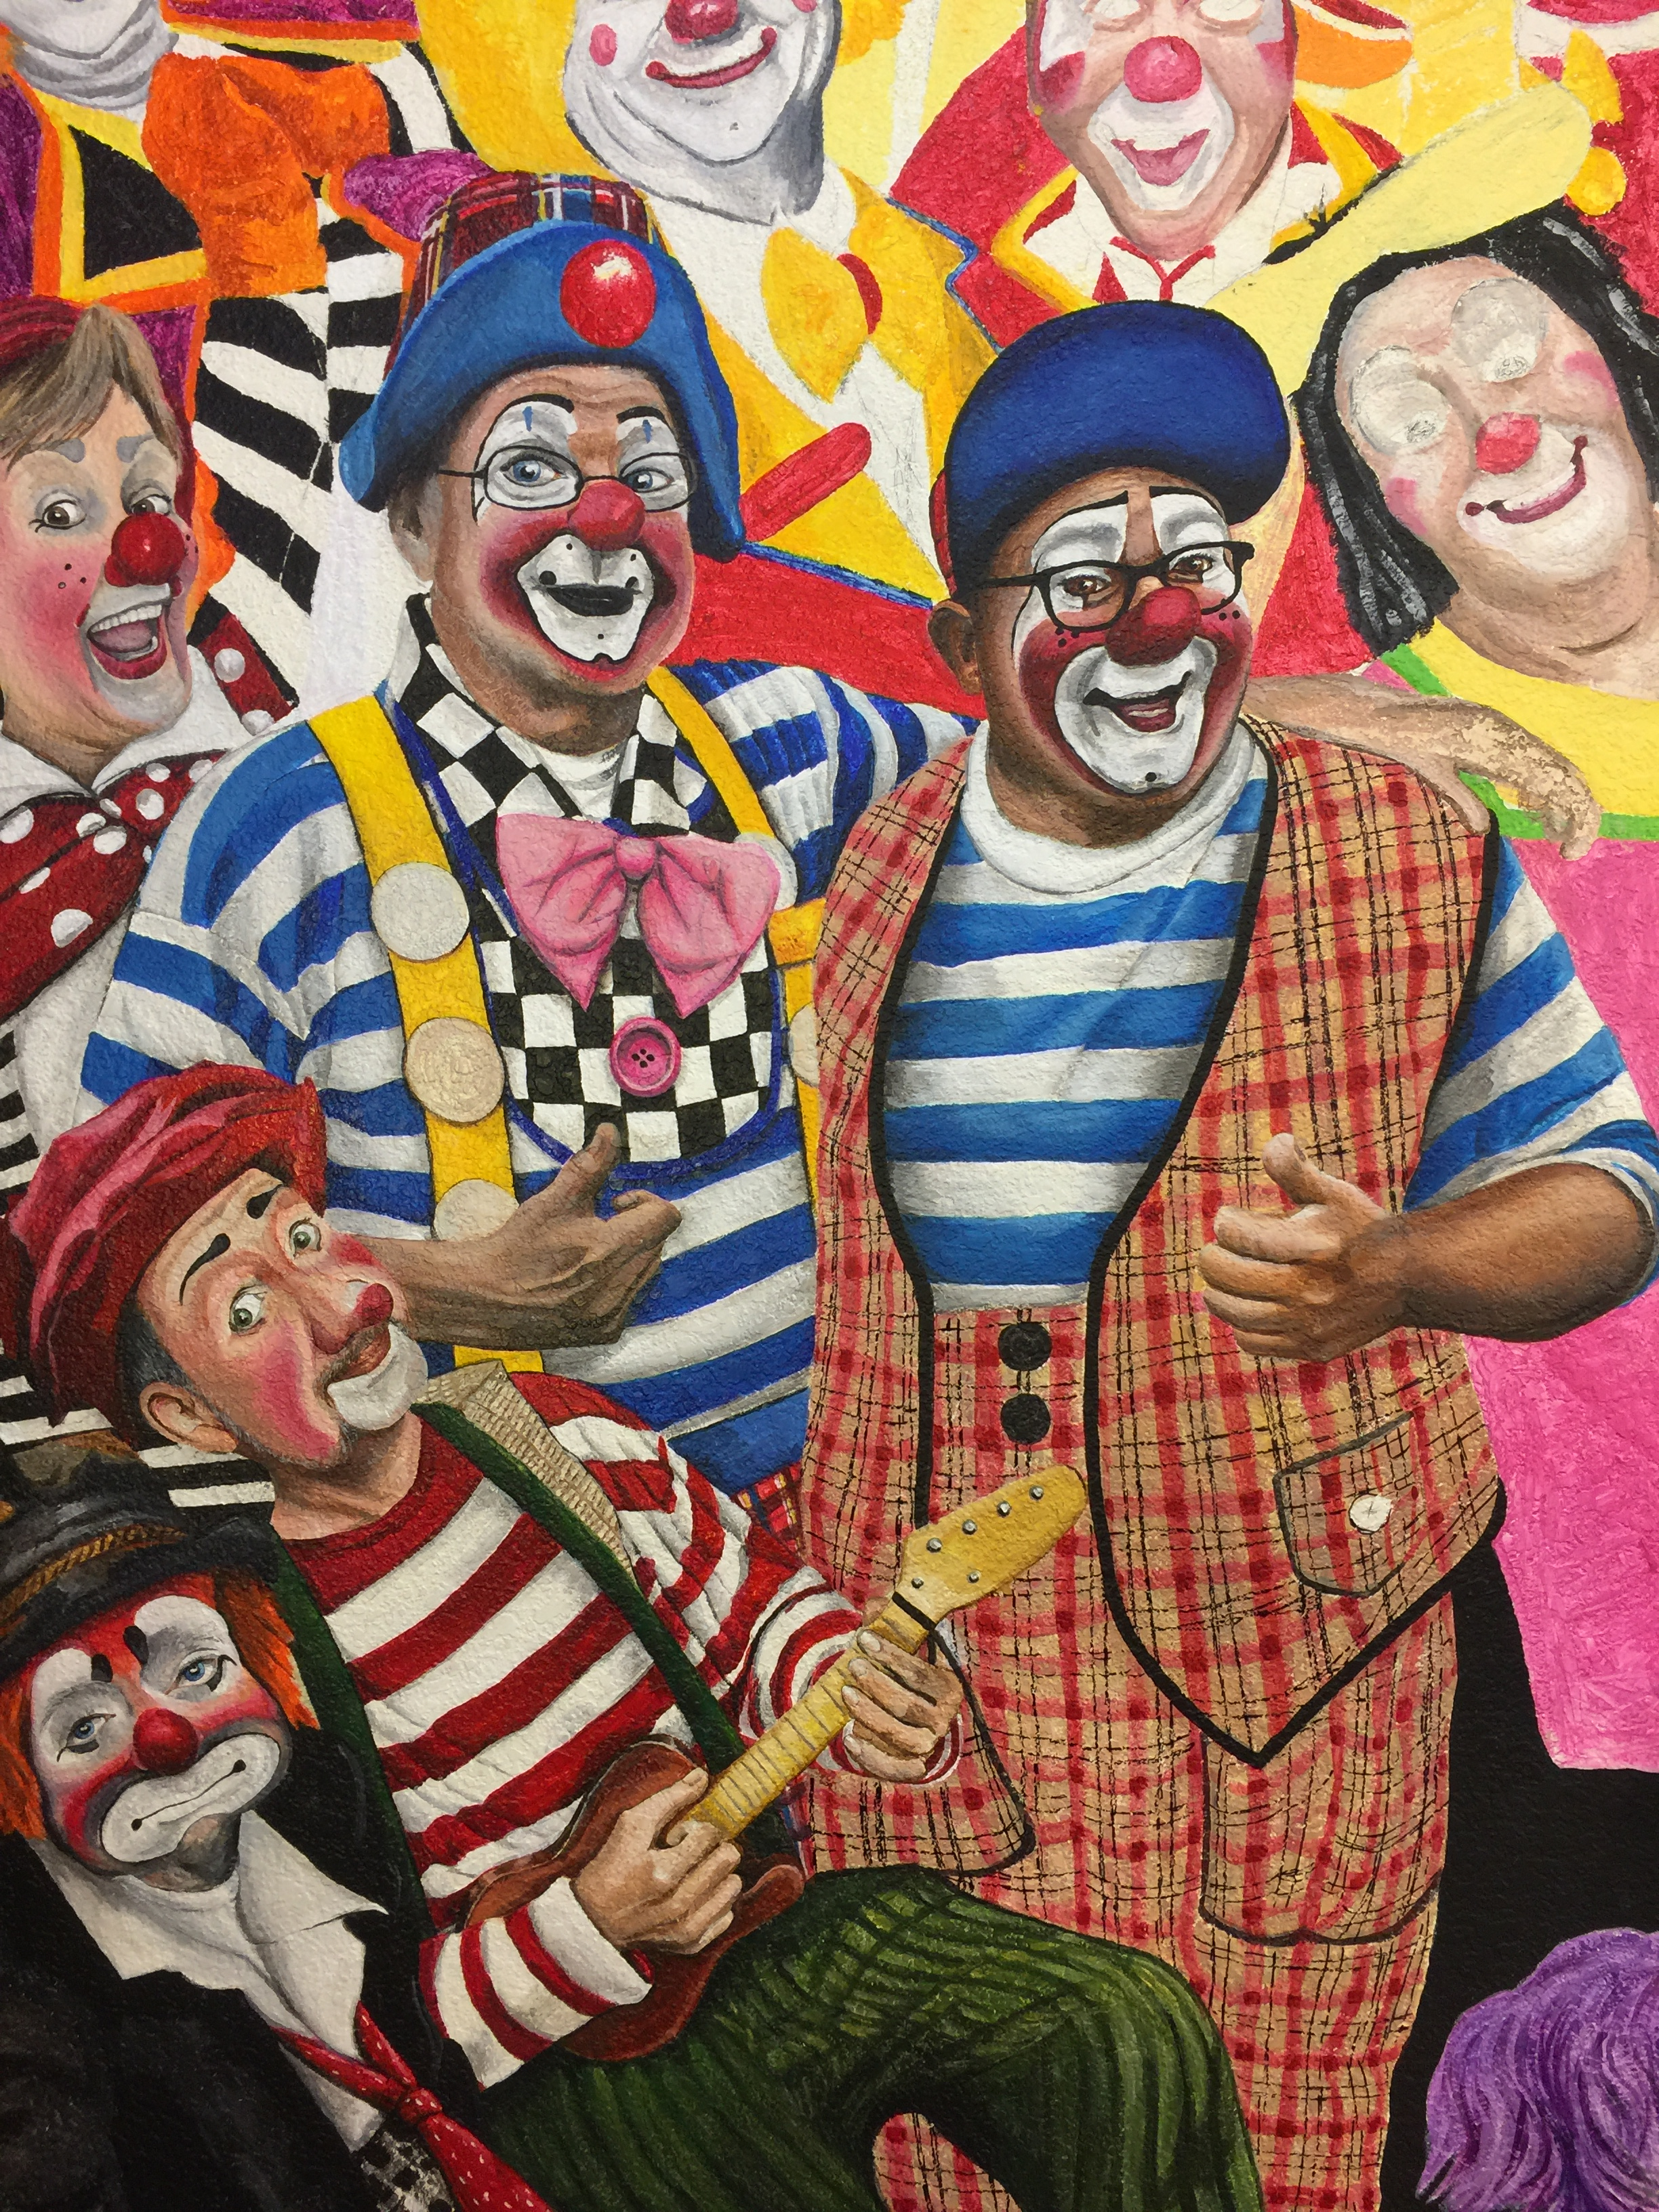 Clown Painting Performance Art